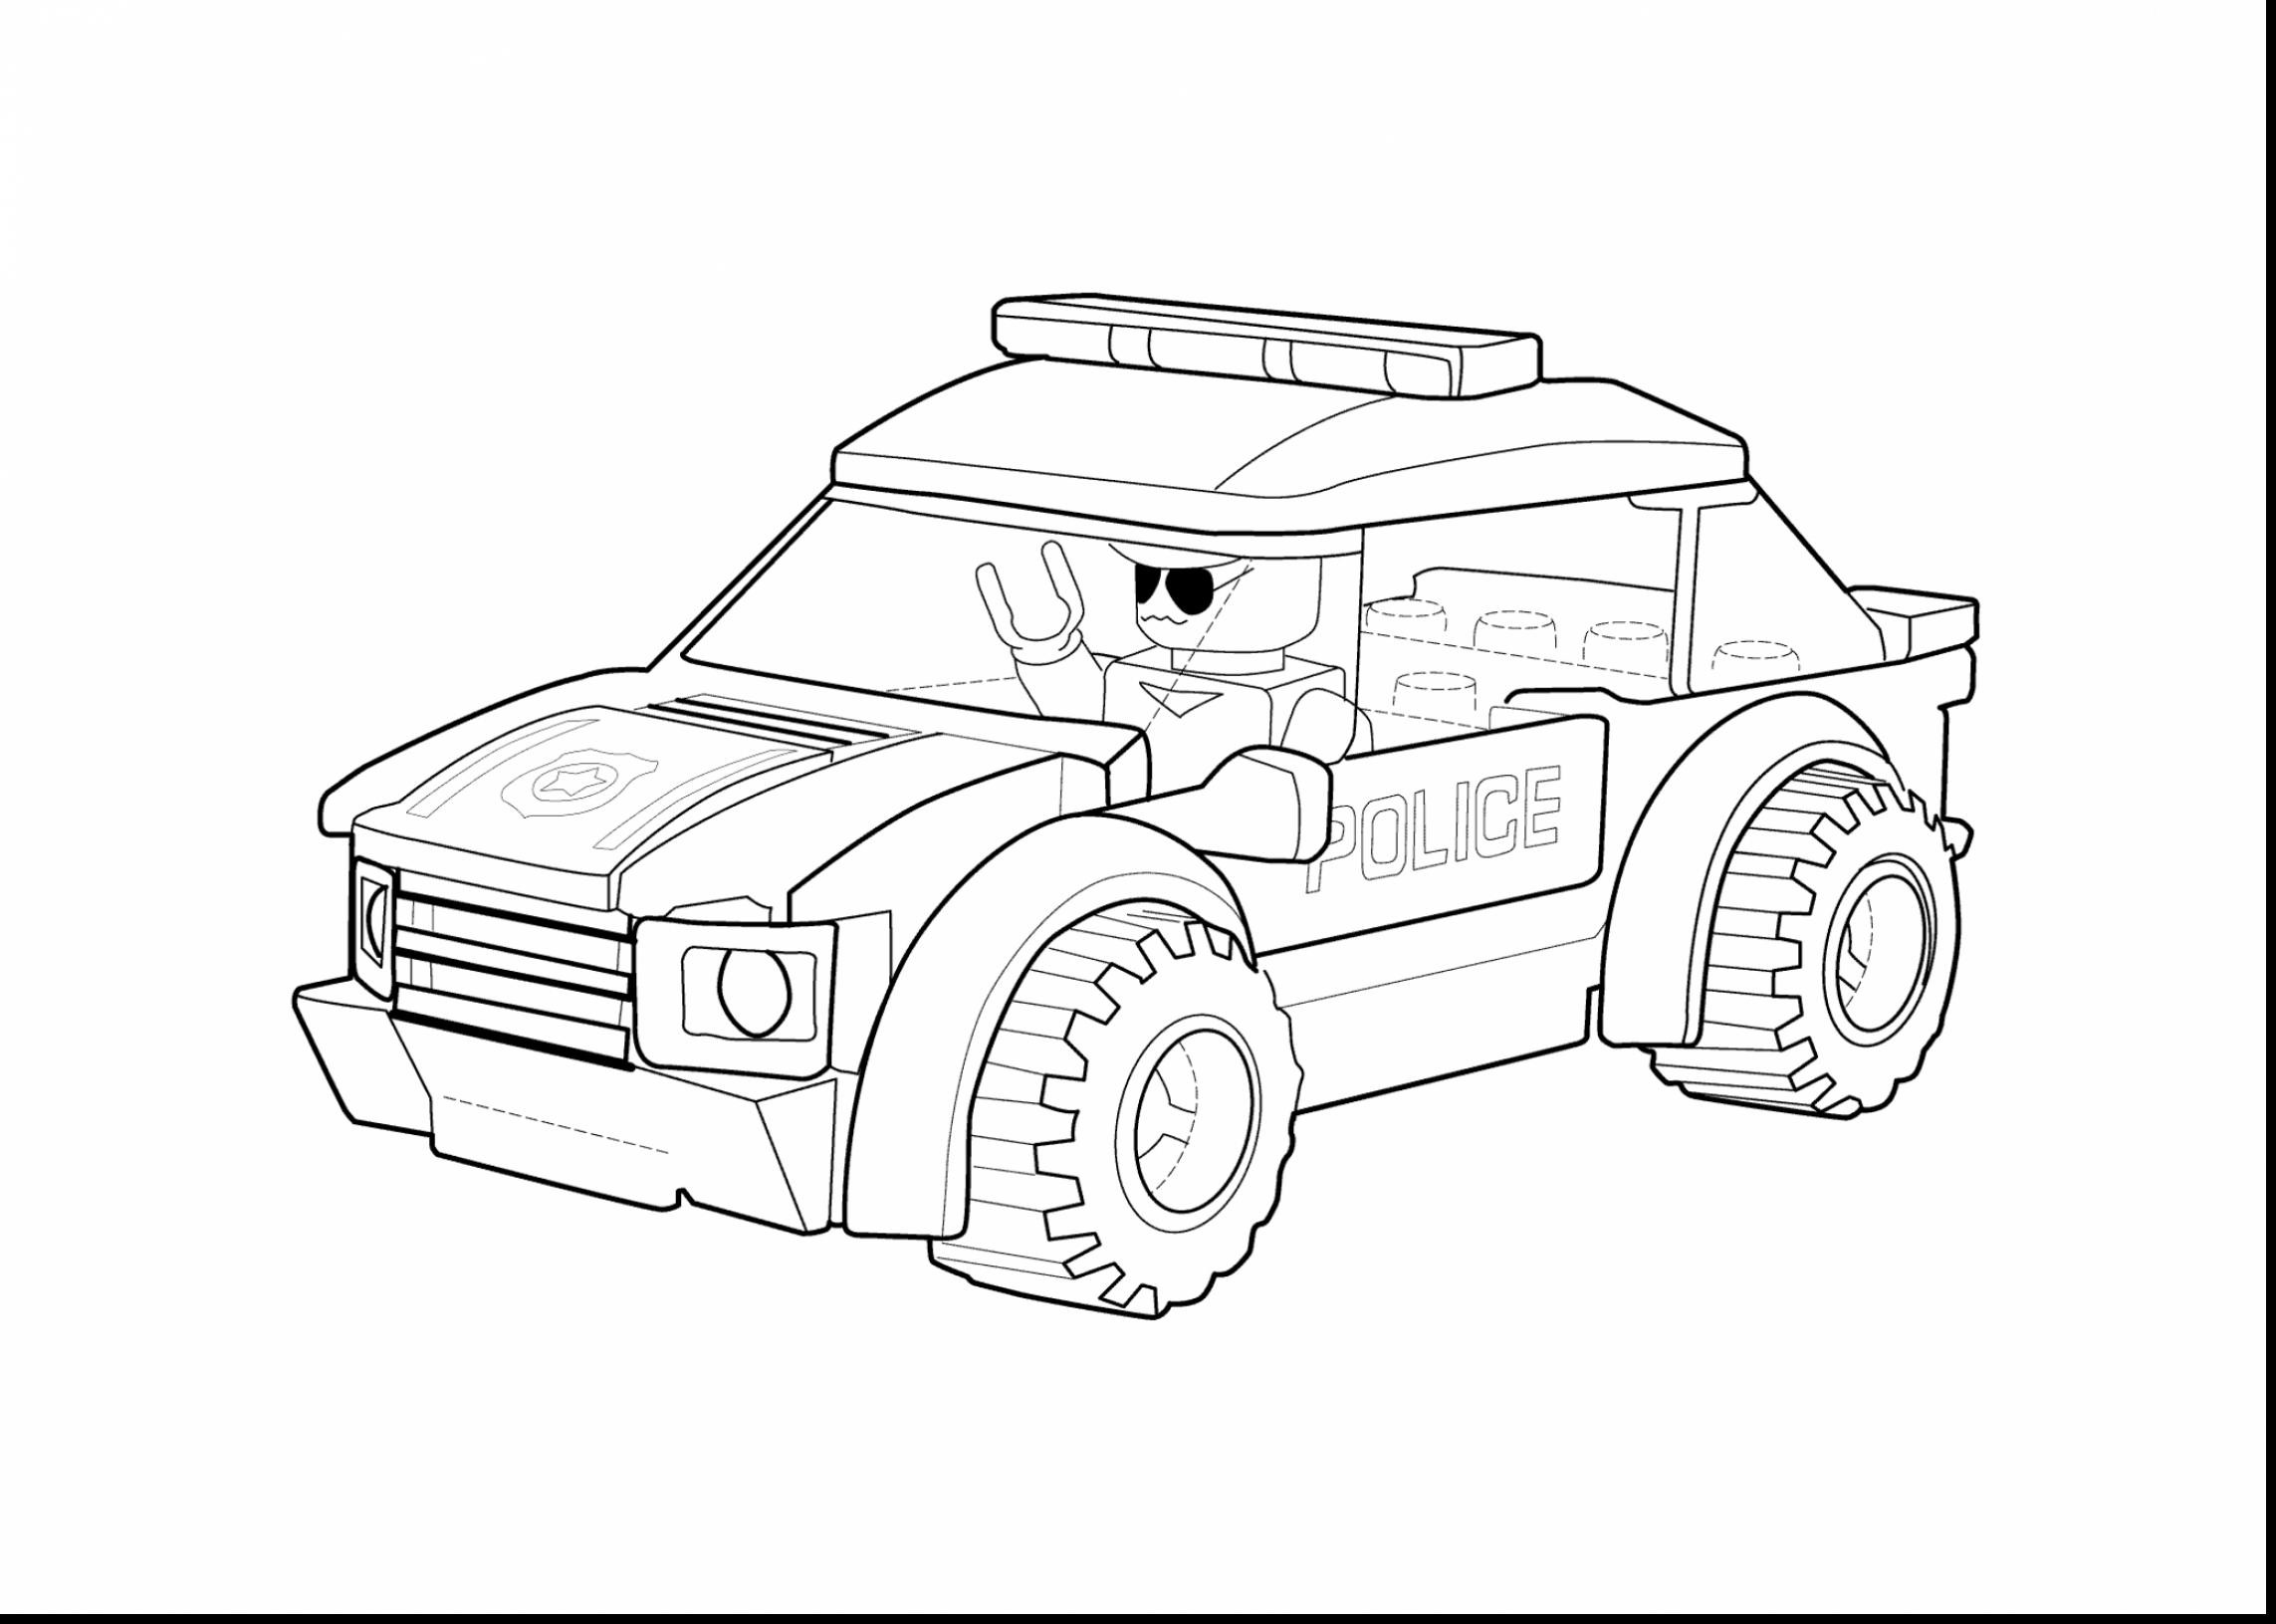 2286x1631 Lego Ninjago Vehicles Coloring Pages New Amazing Lego Police Car